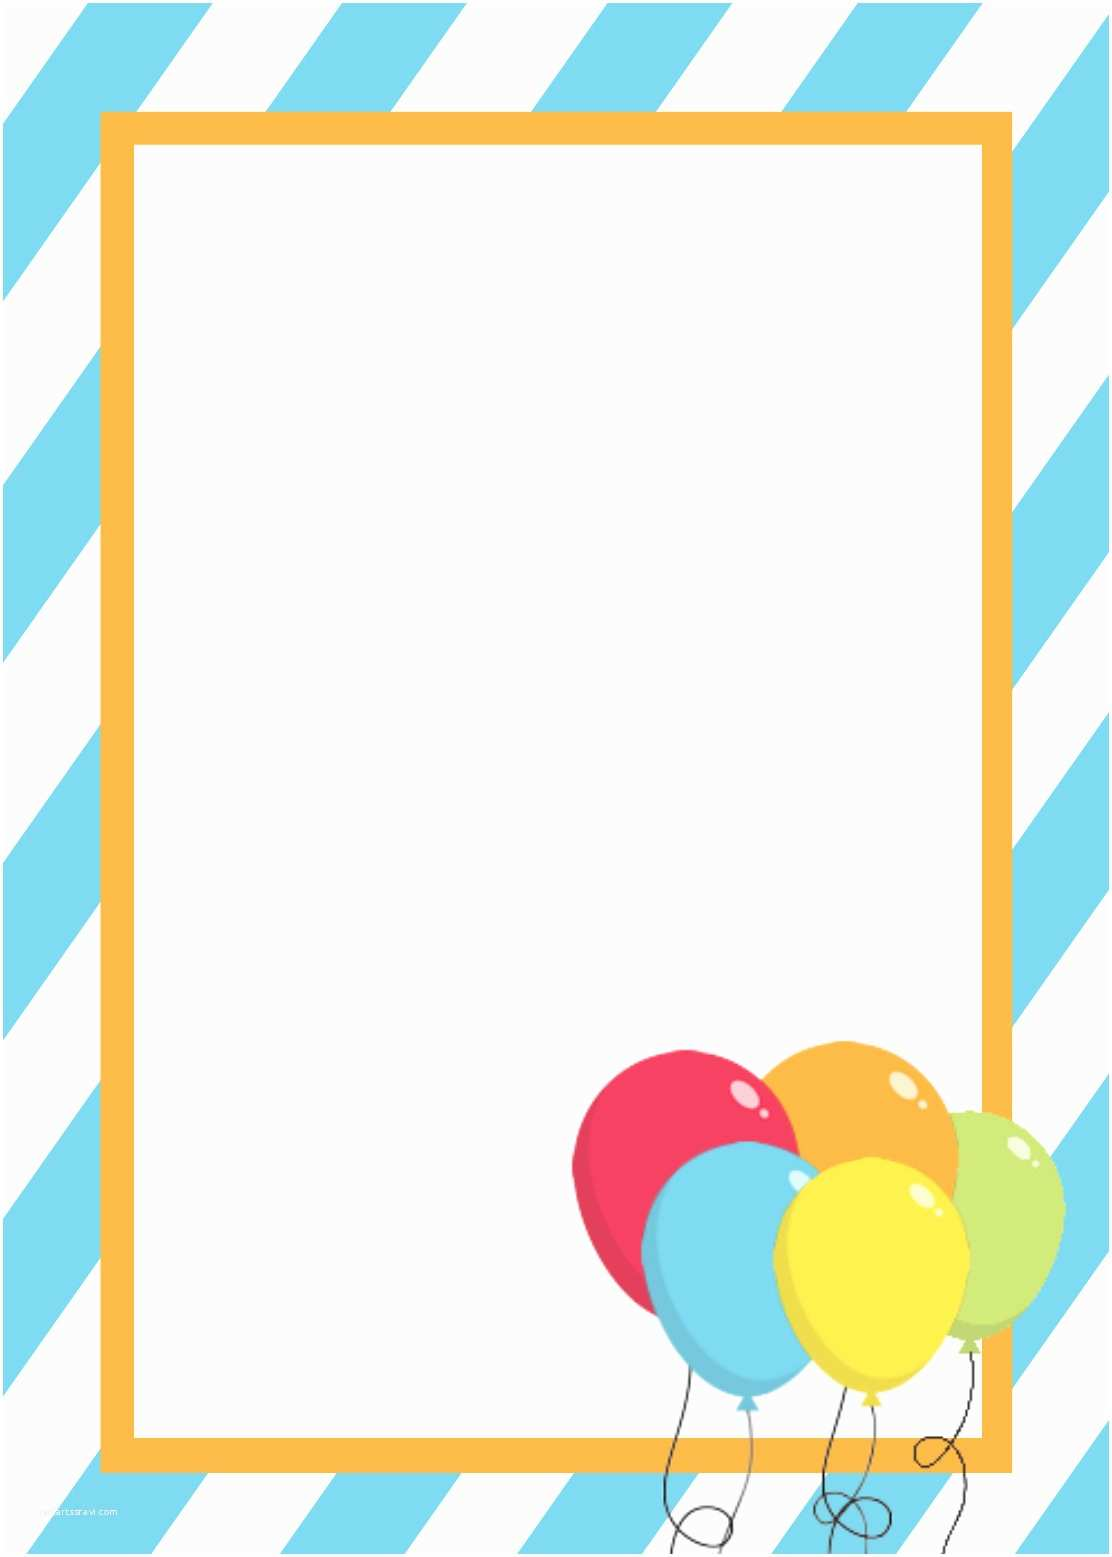 Birthday Party Invitation Template Free Printable Birthday Invitation Templates